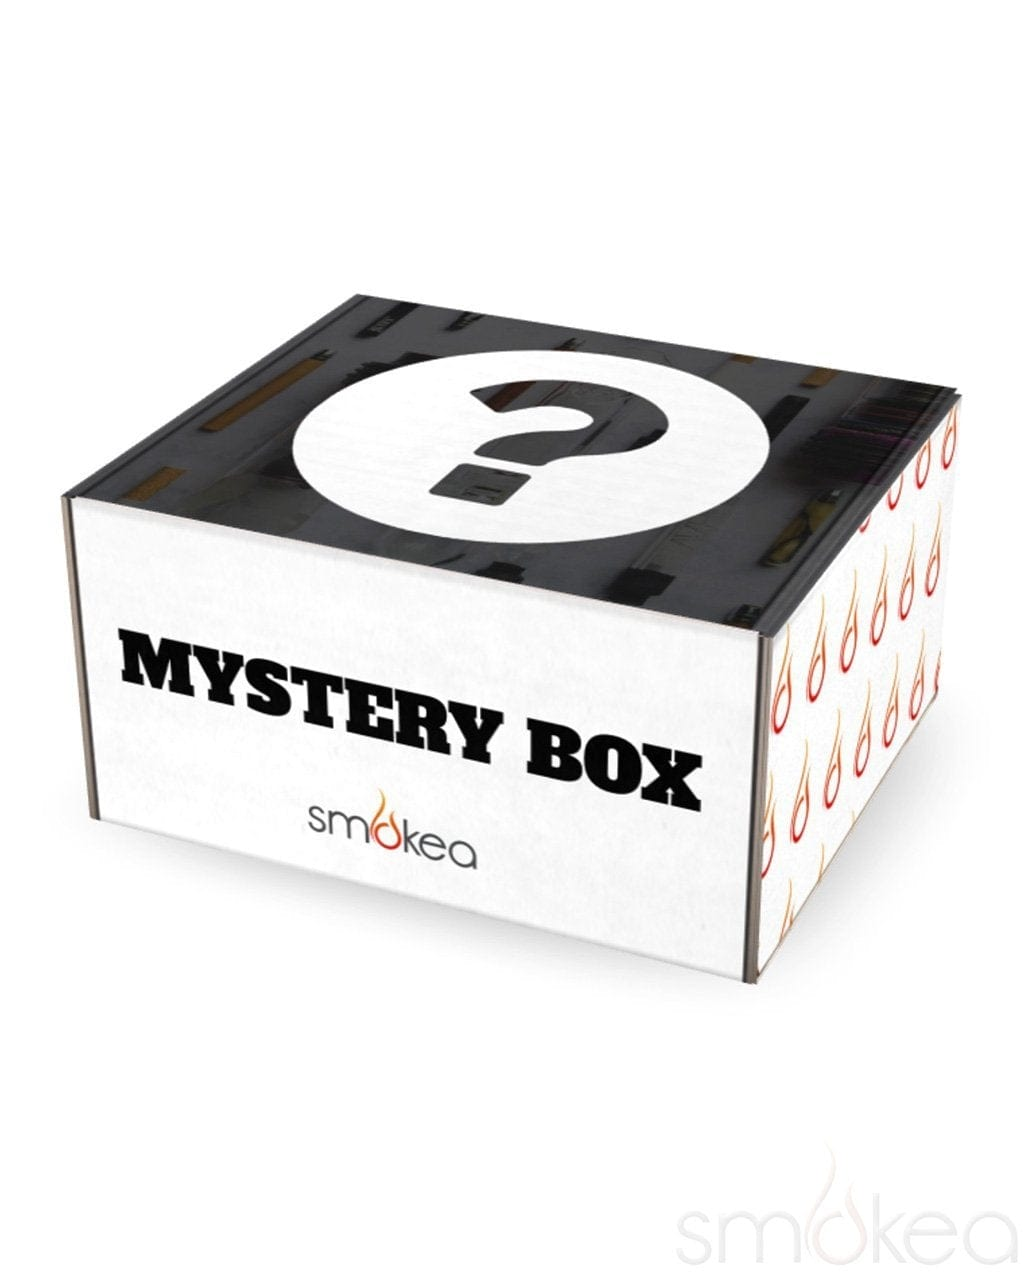 SMOKEA Mystery Box - SMOKEA